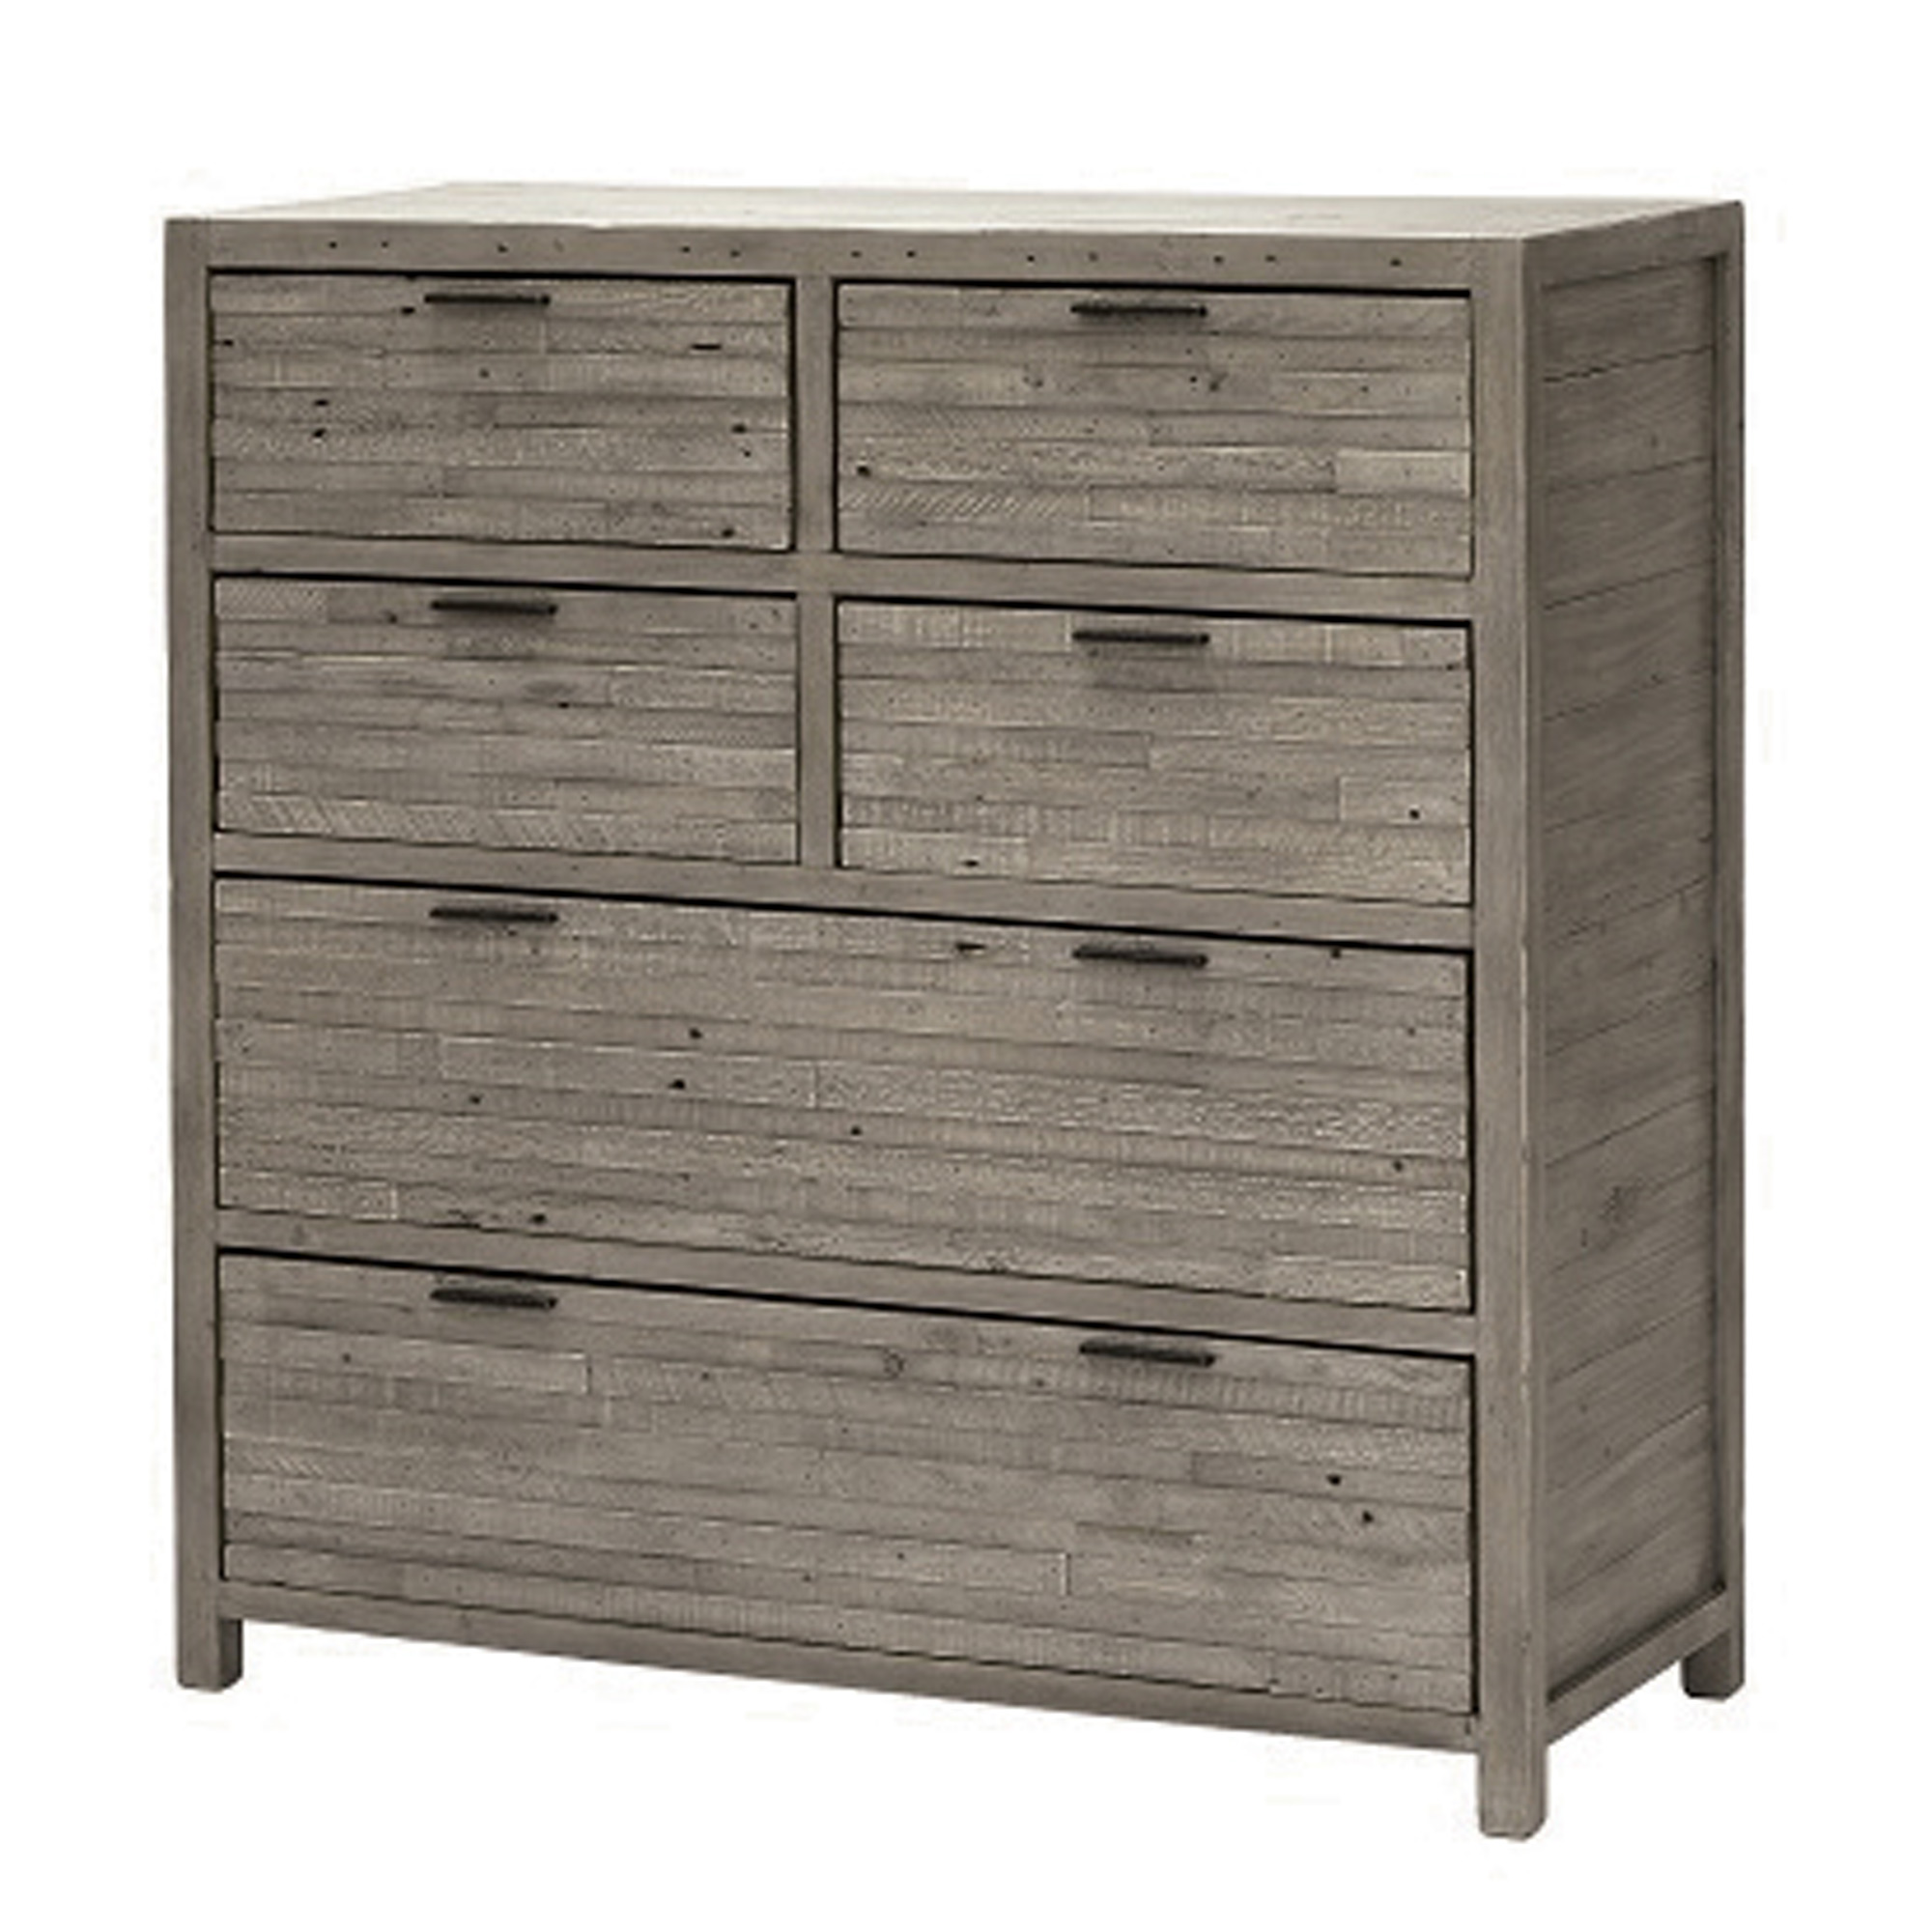 Siena Six Drawer Chest